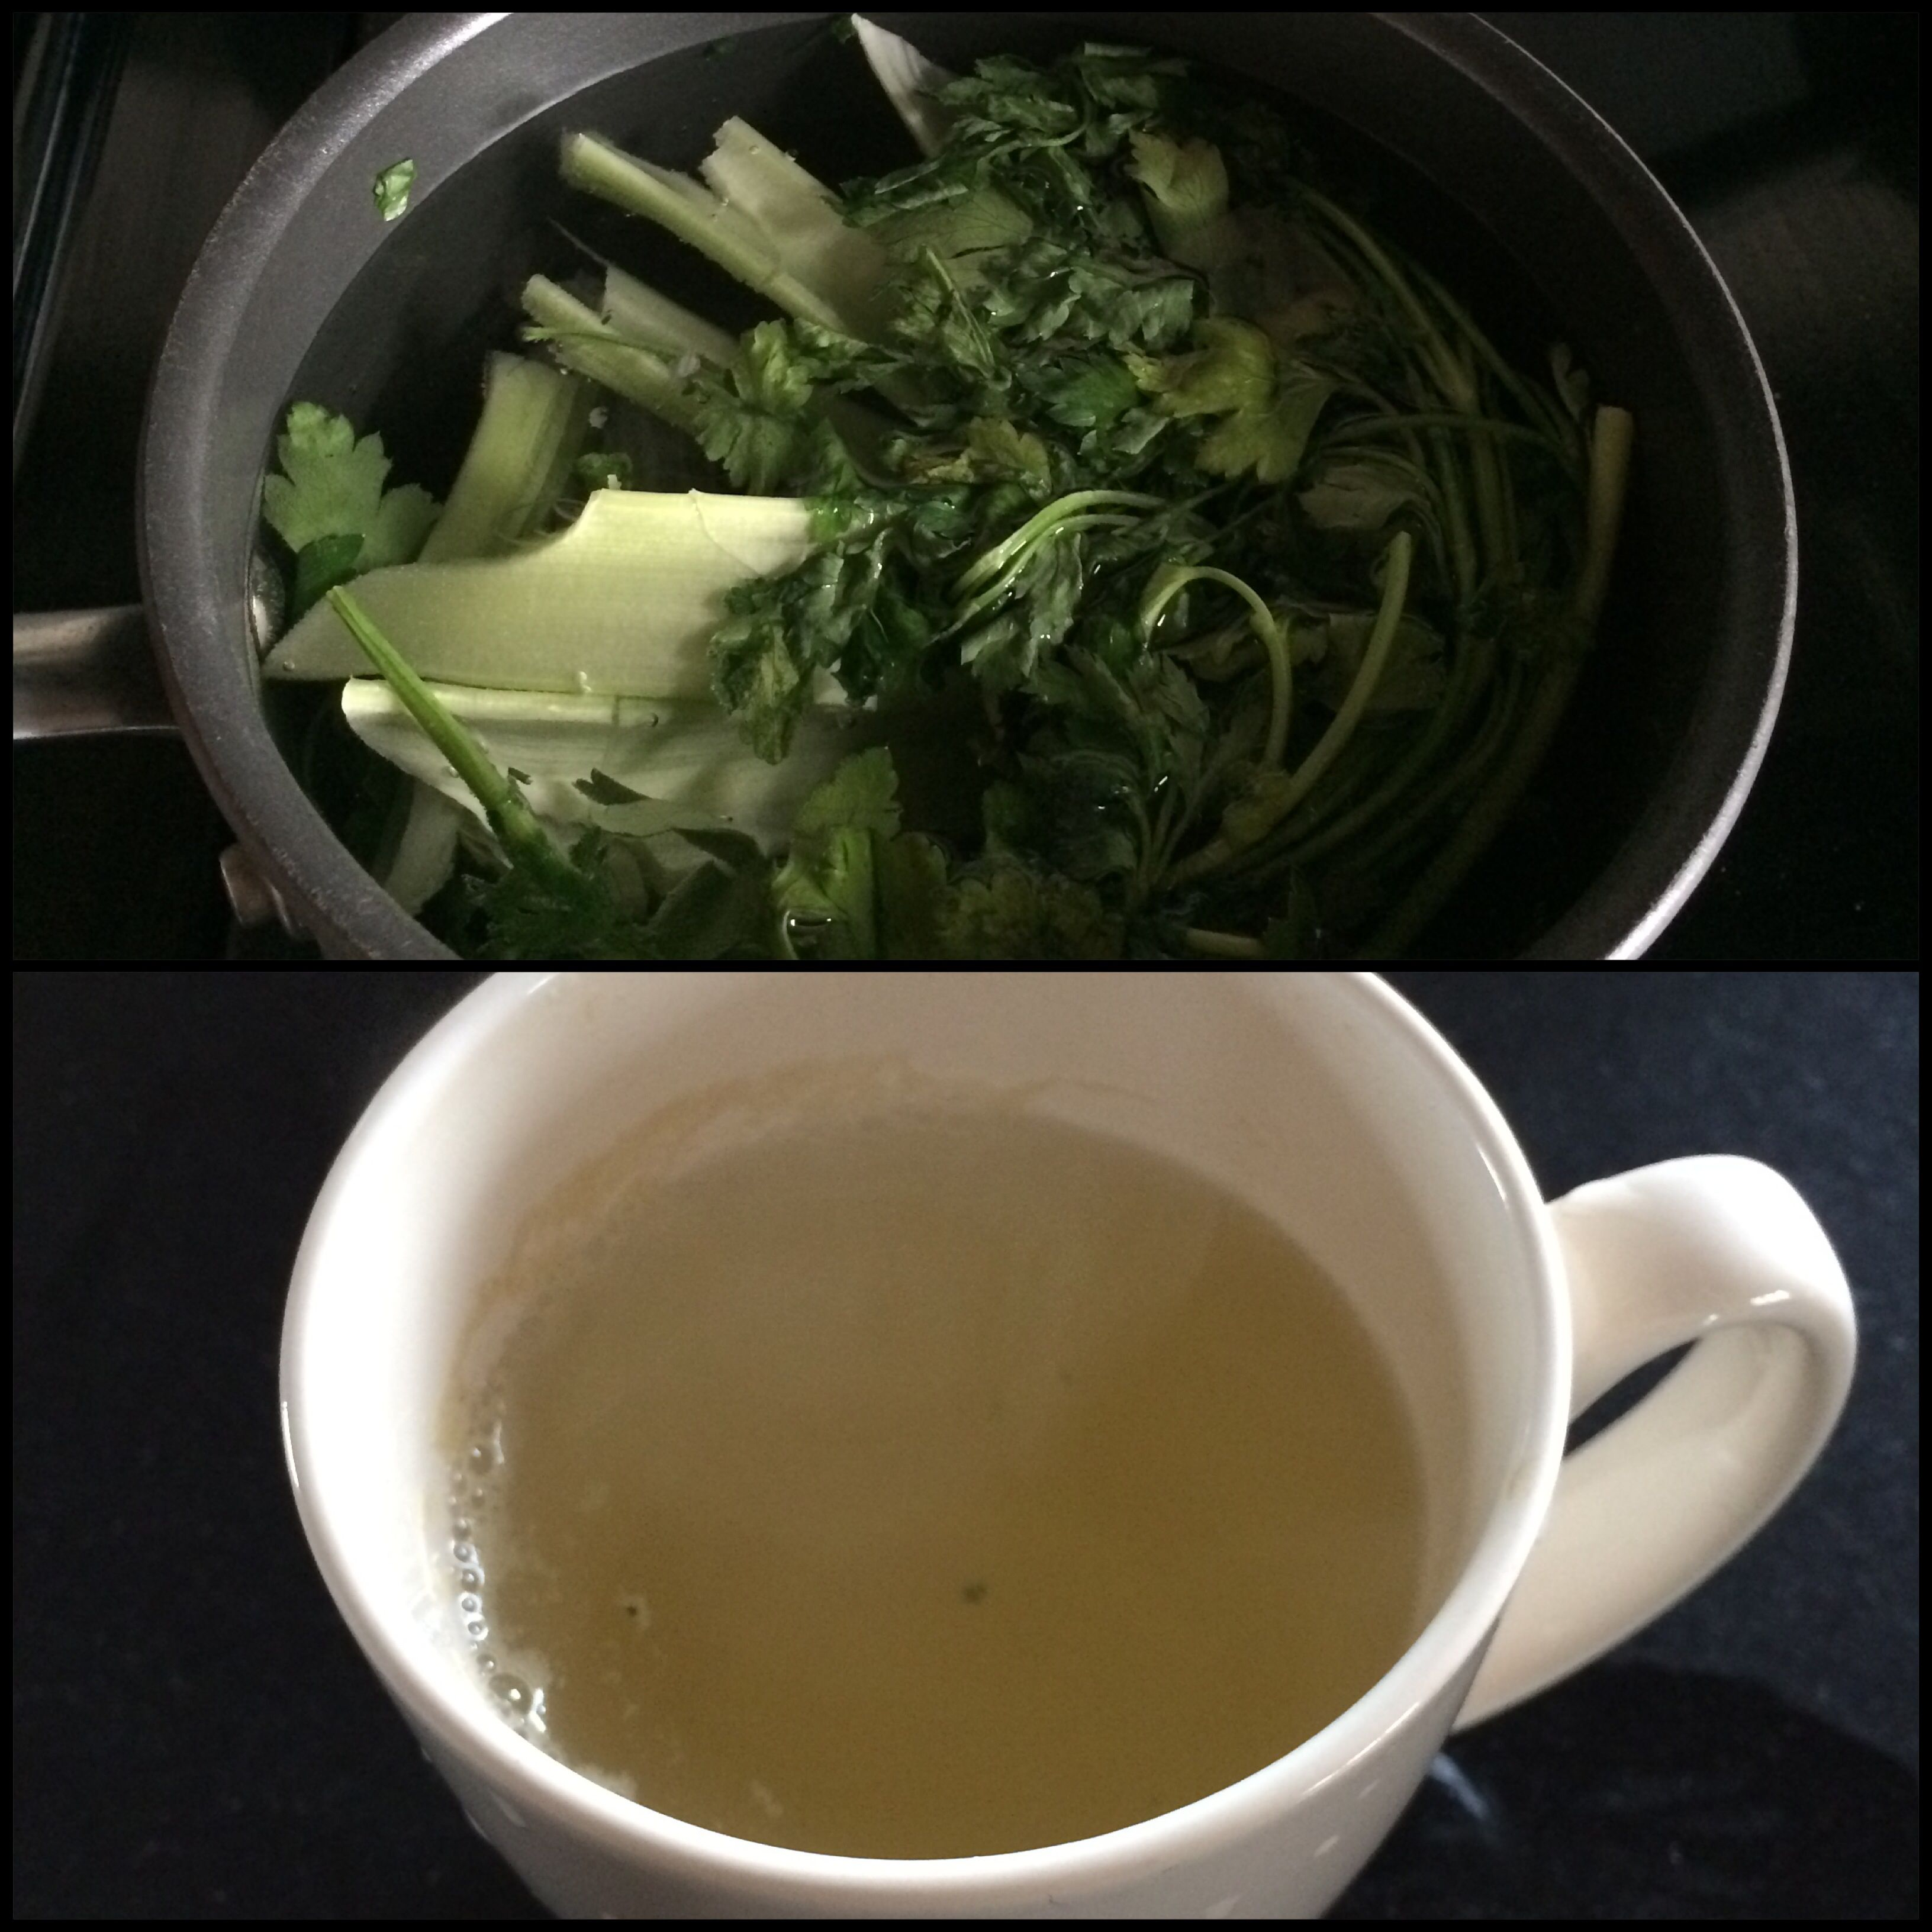 Detox drink. Celery and parsley. Brought to a boil. Remove and drink the broth. Every morning heated